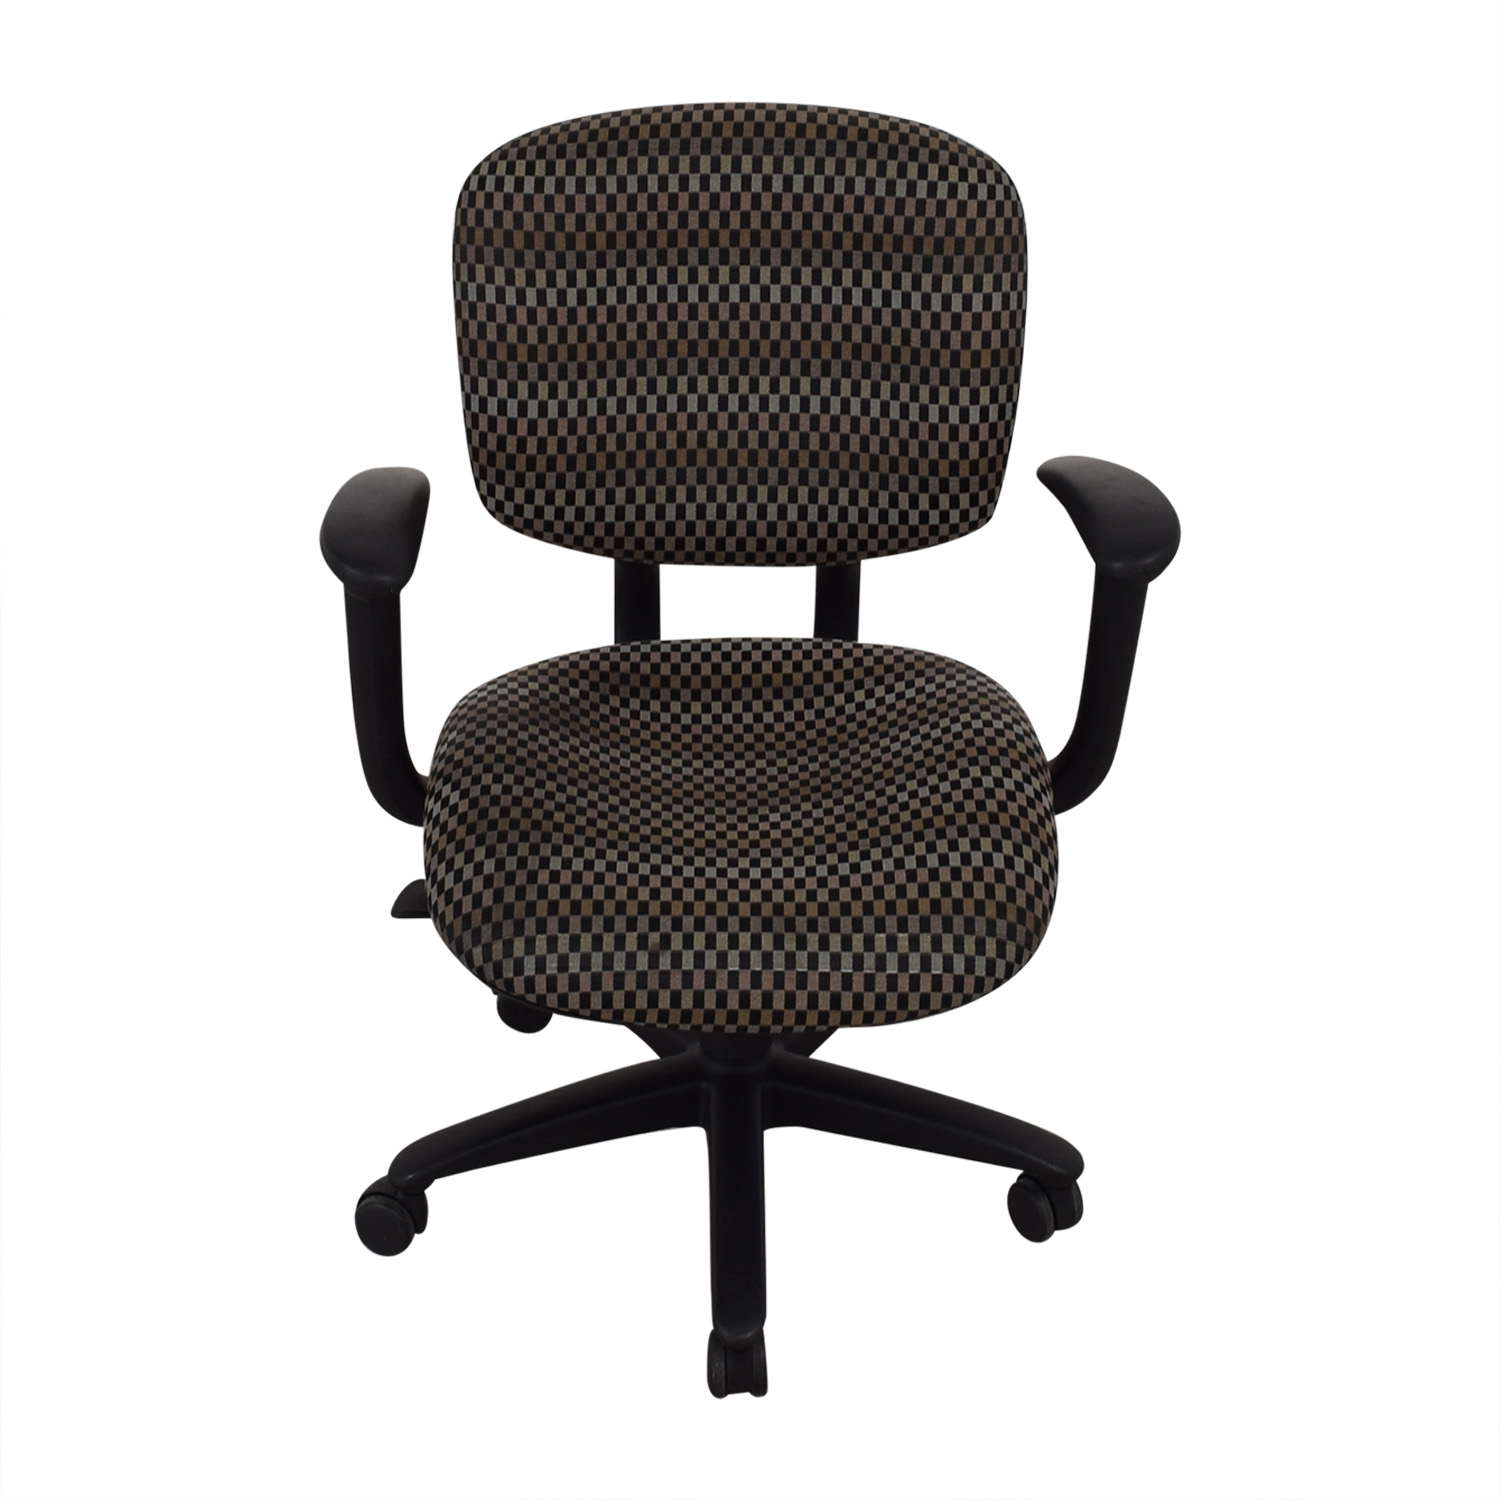 Haworth Haworth Improv Office Desk Chair price